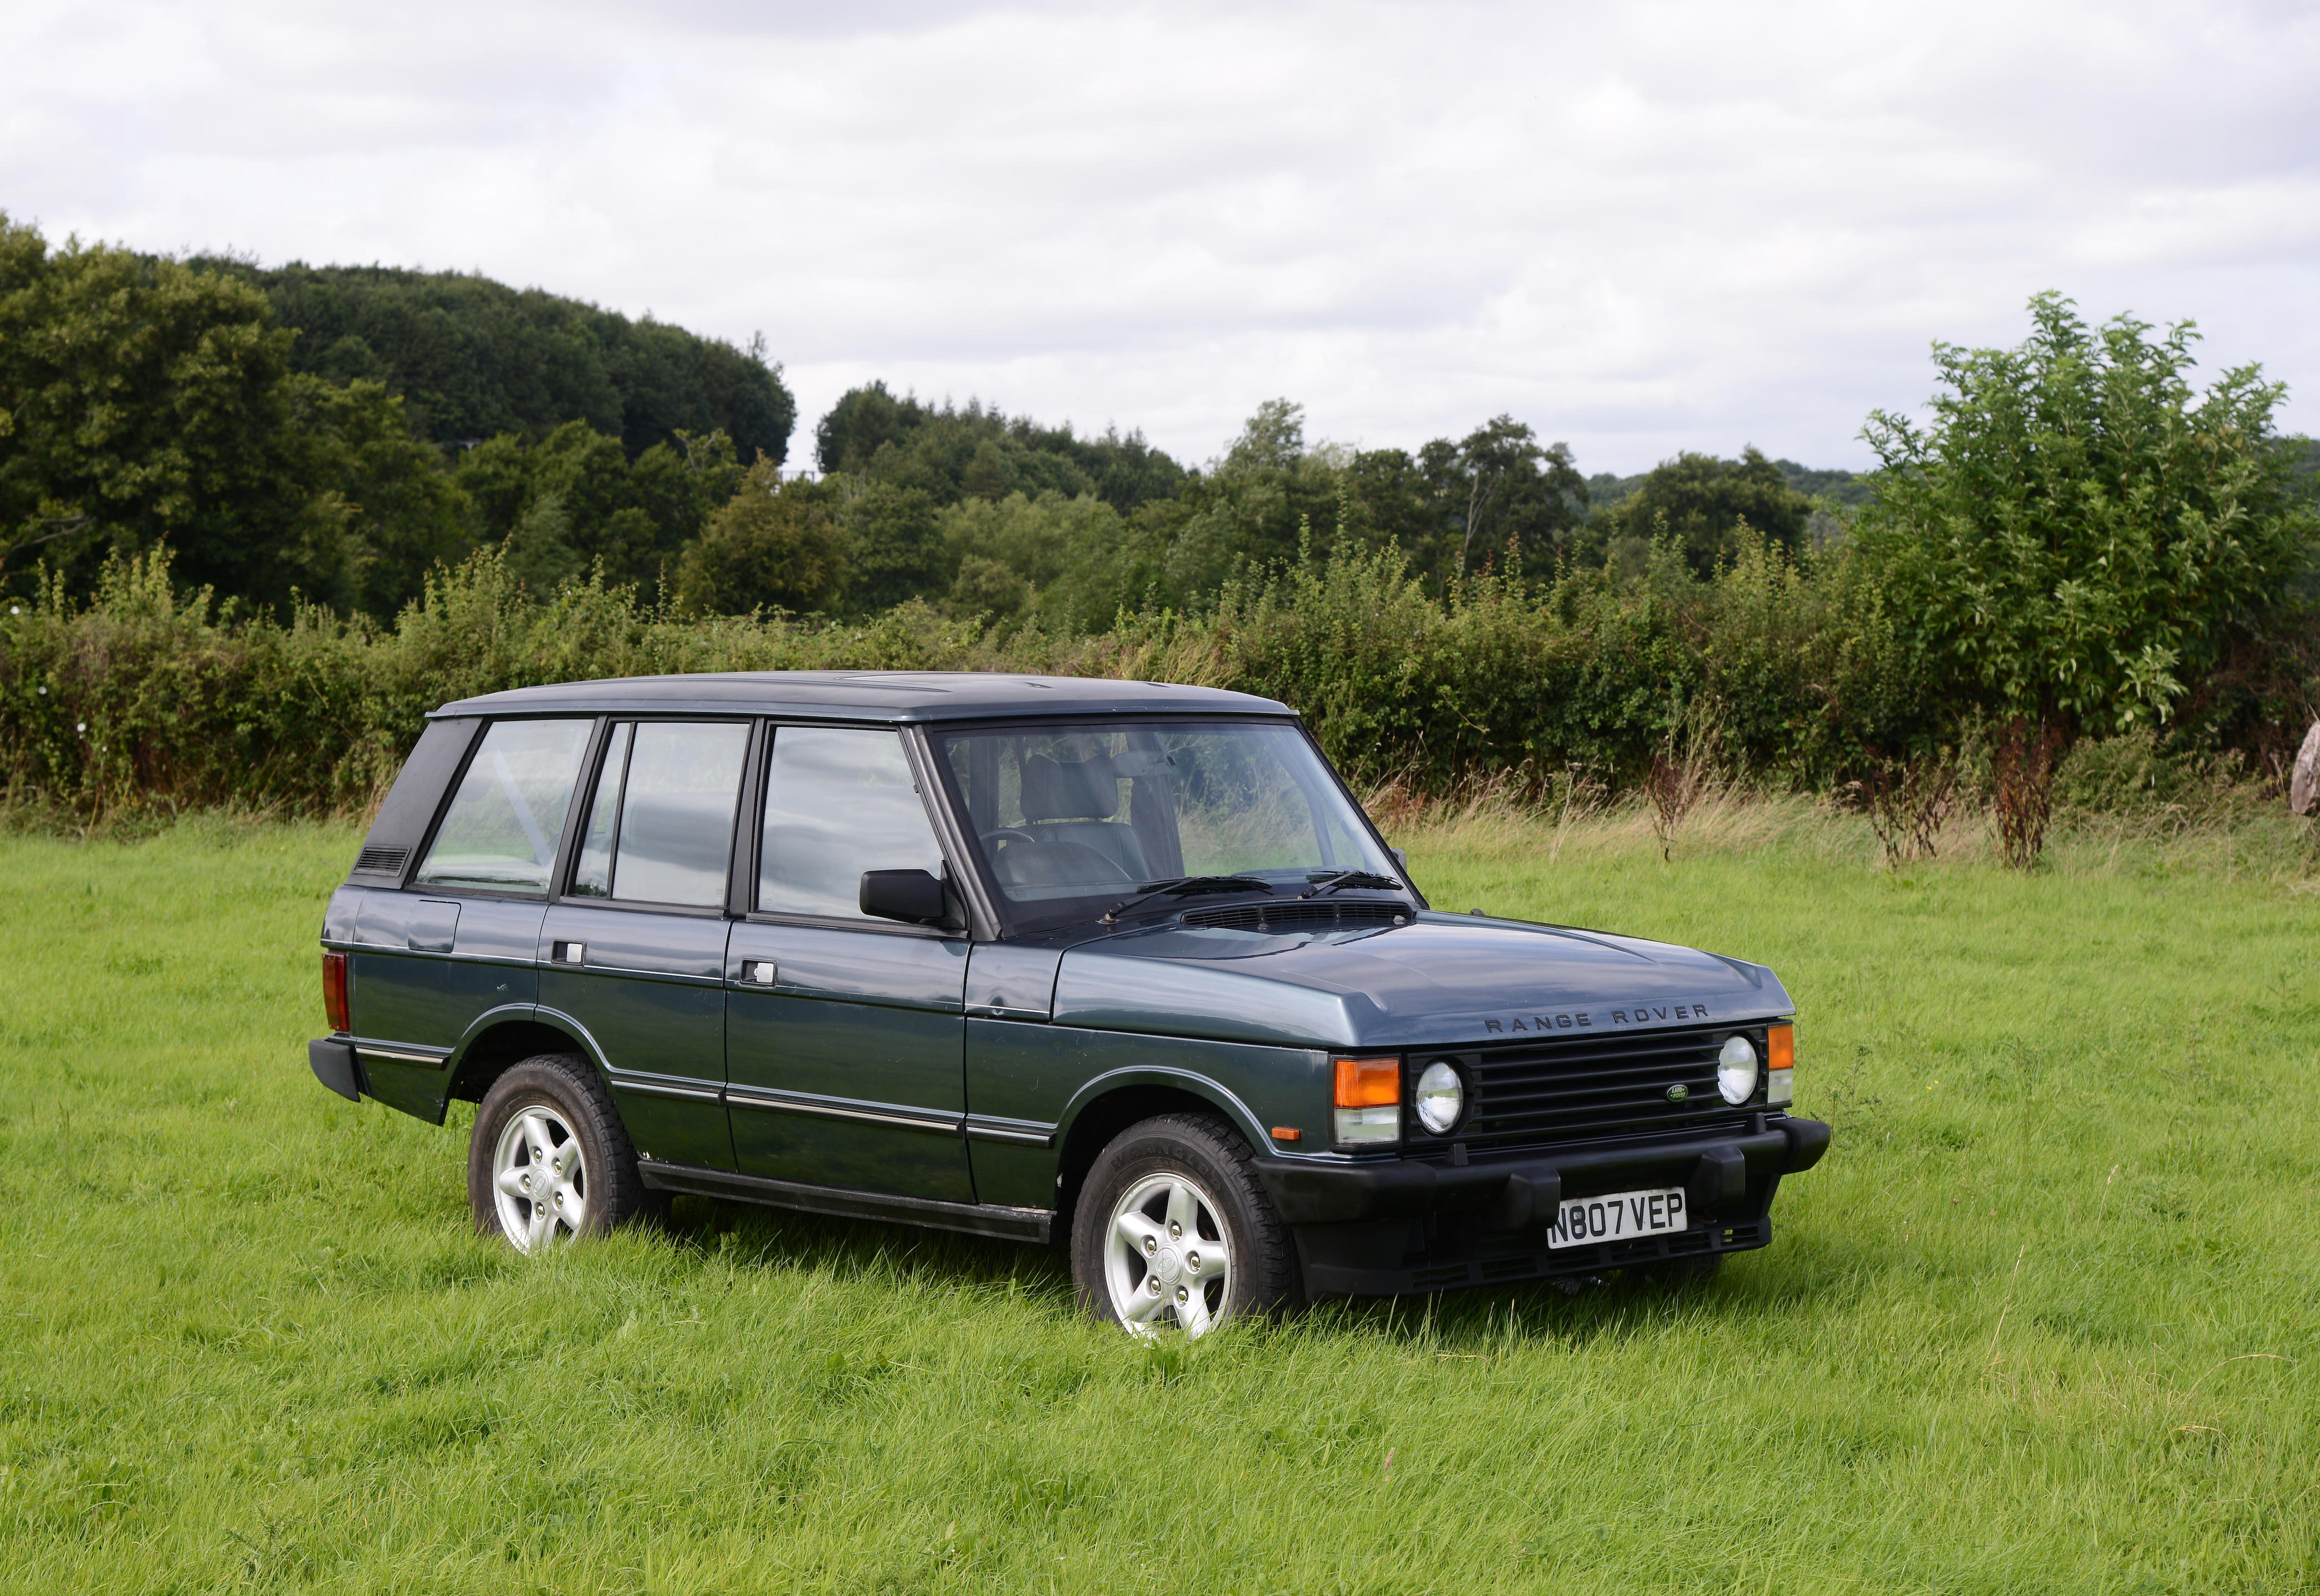 1995  Range Rover Vogue Classic  Chassis no. SALLHAMM3MA662155